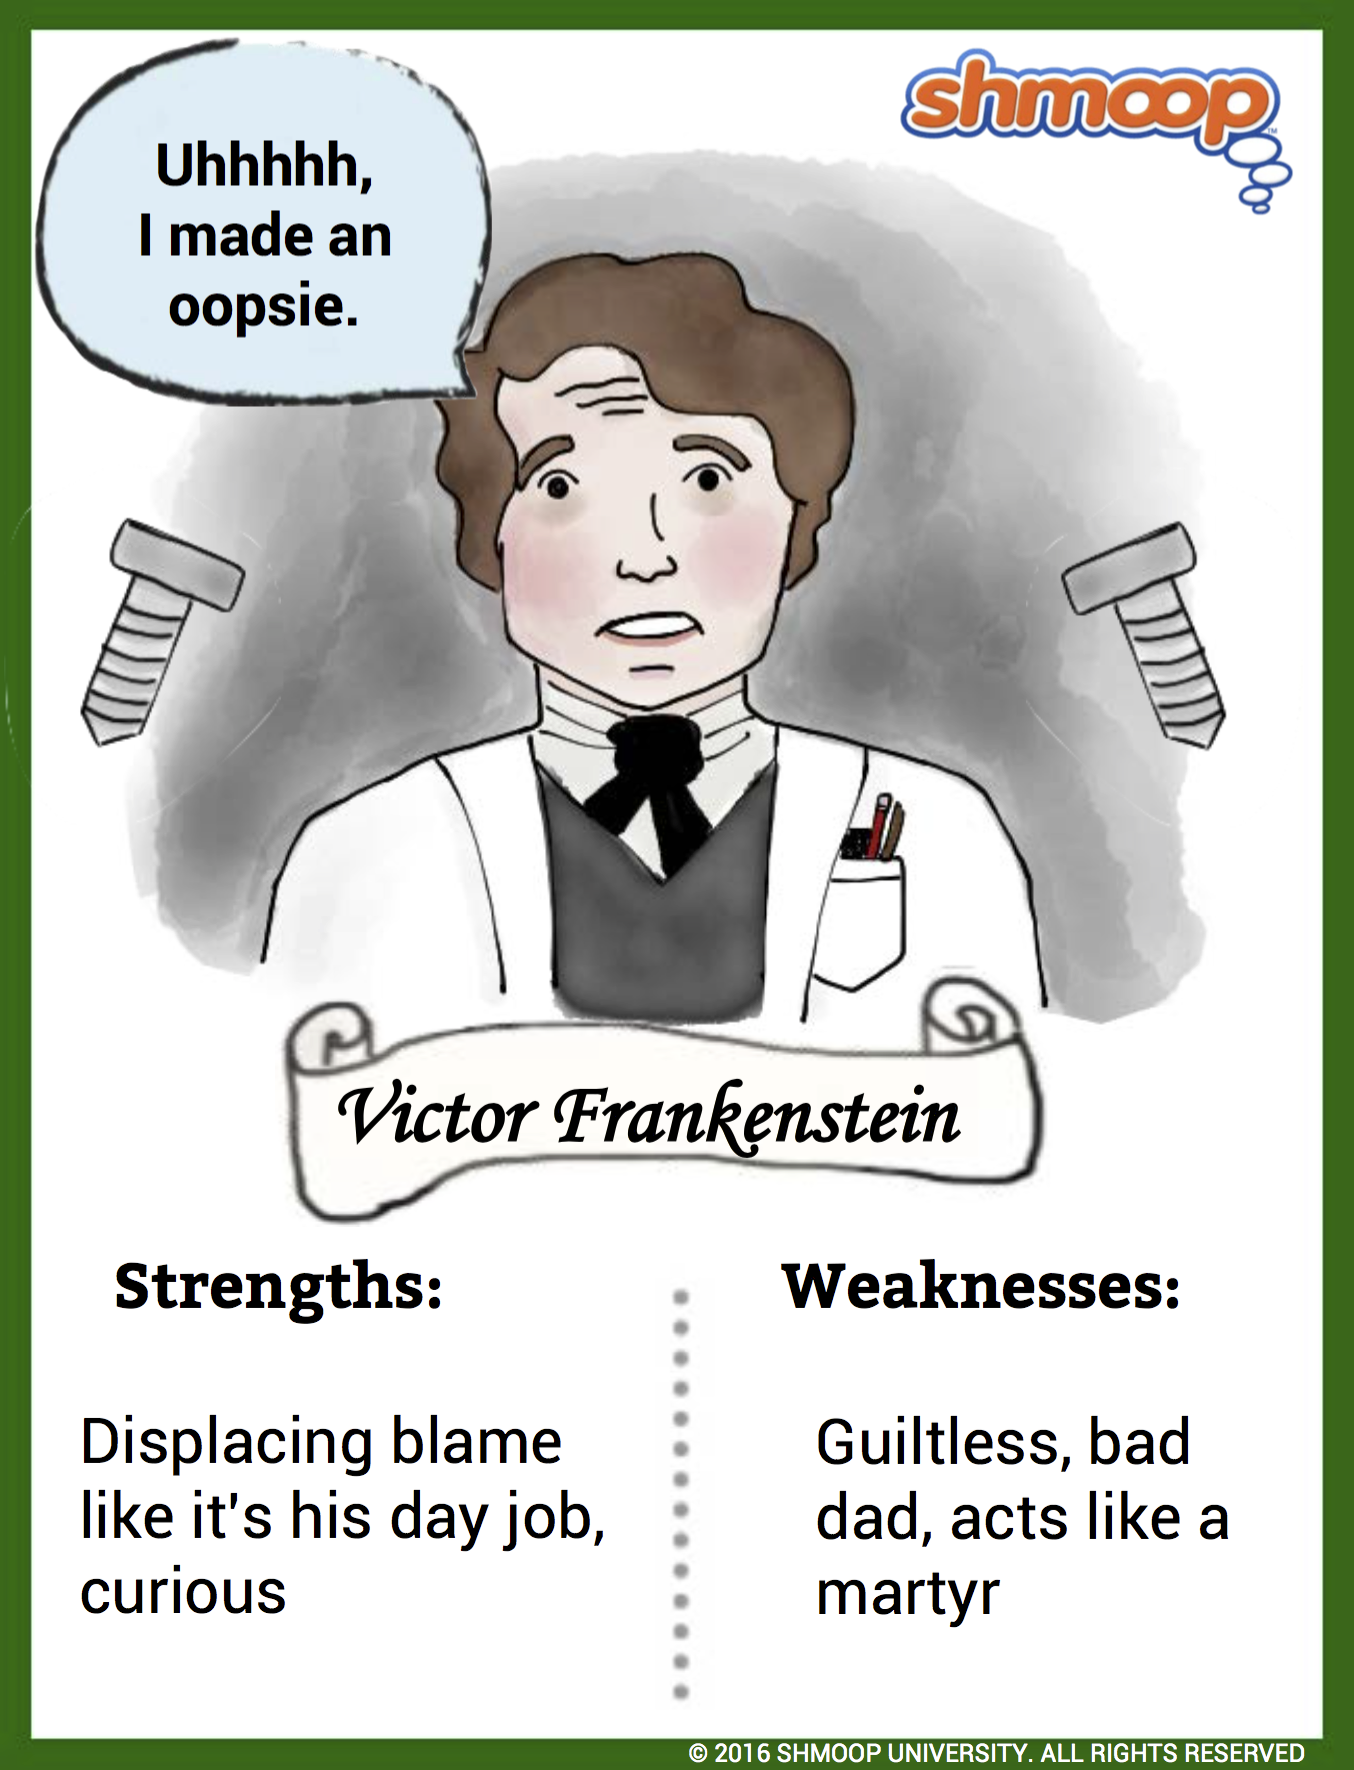 analysis essay of frankenstein Analysis of the themes in frankenstein english literature essay print reference frankenstein has abundant references and obvious influences from the time.